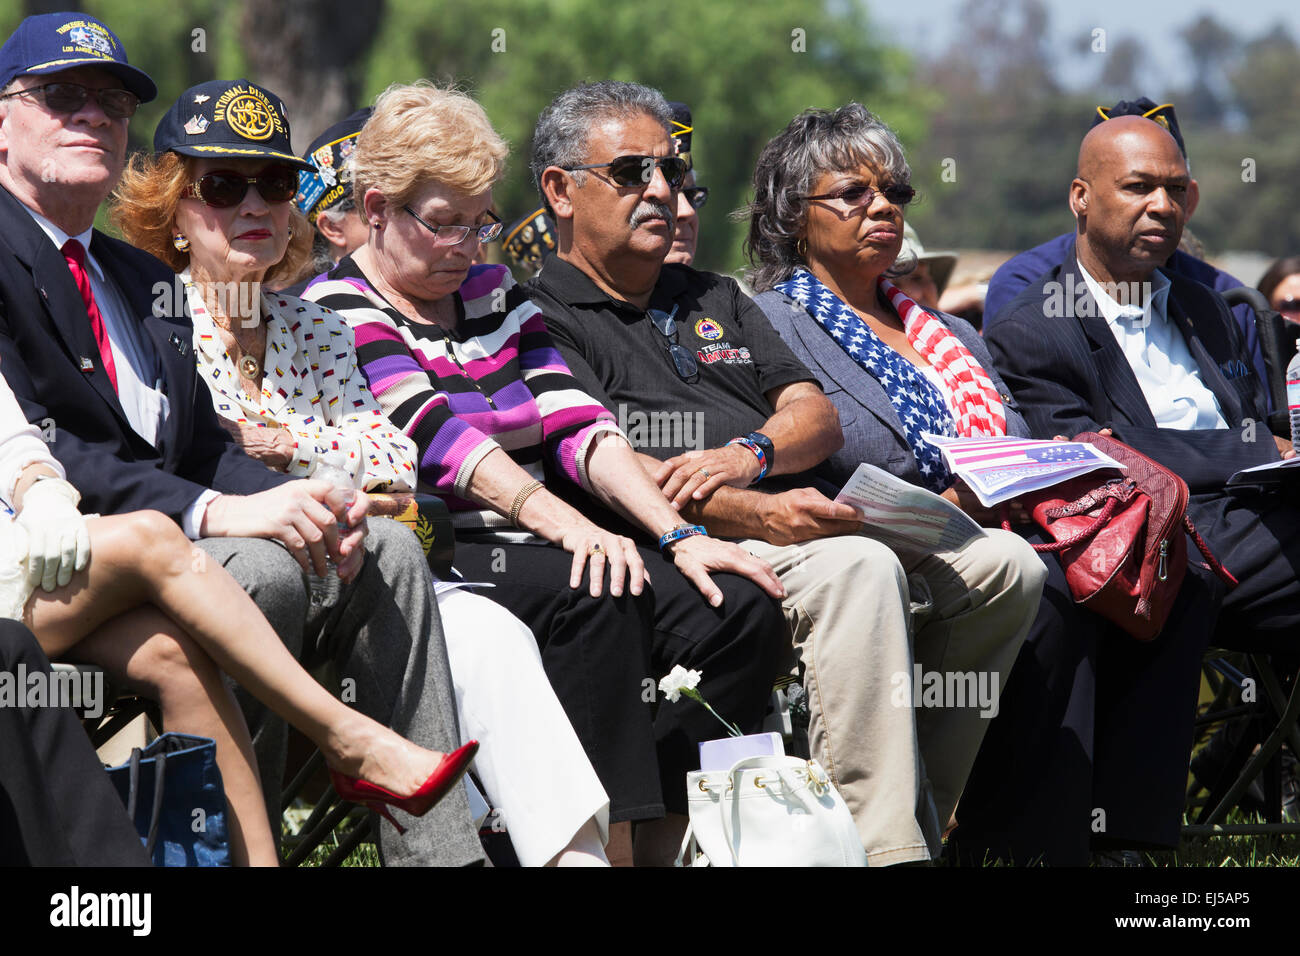 Solemn audience at Los Angeles National Cemetery Annual Memorial Event, May 26, 2014, California, USA - Stock Image